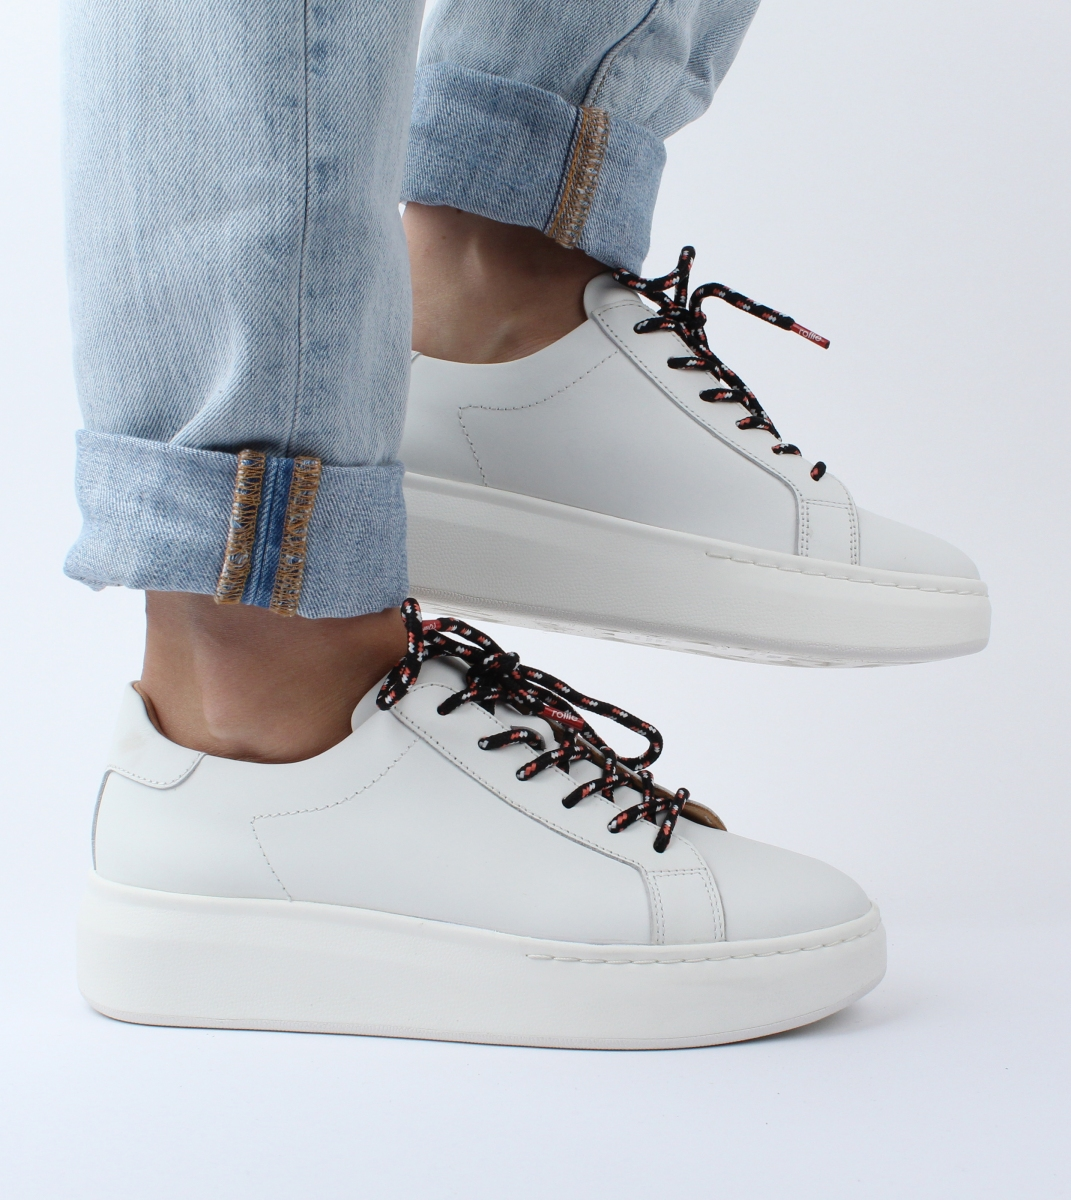 Rollie-City_Sneaker-White-M3